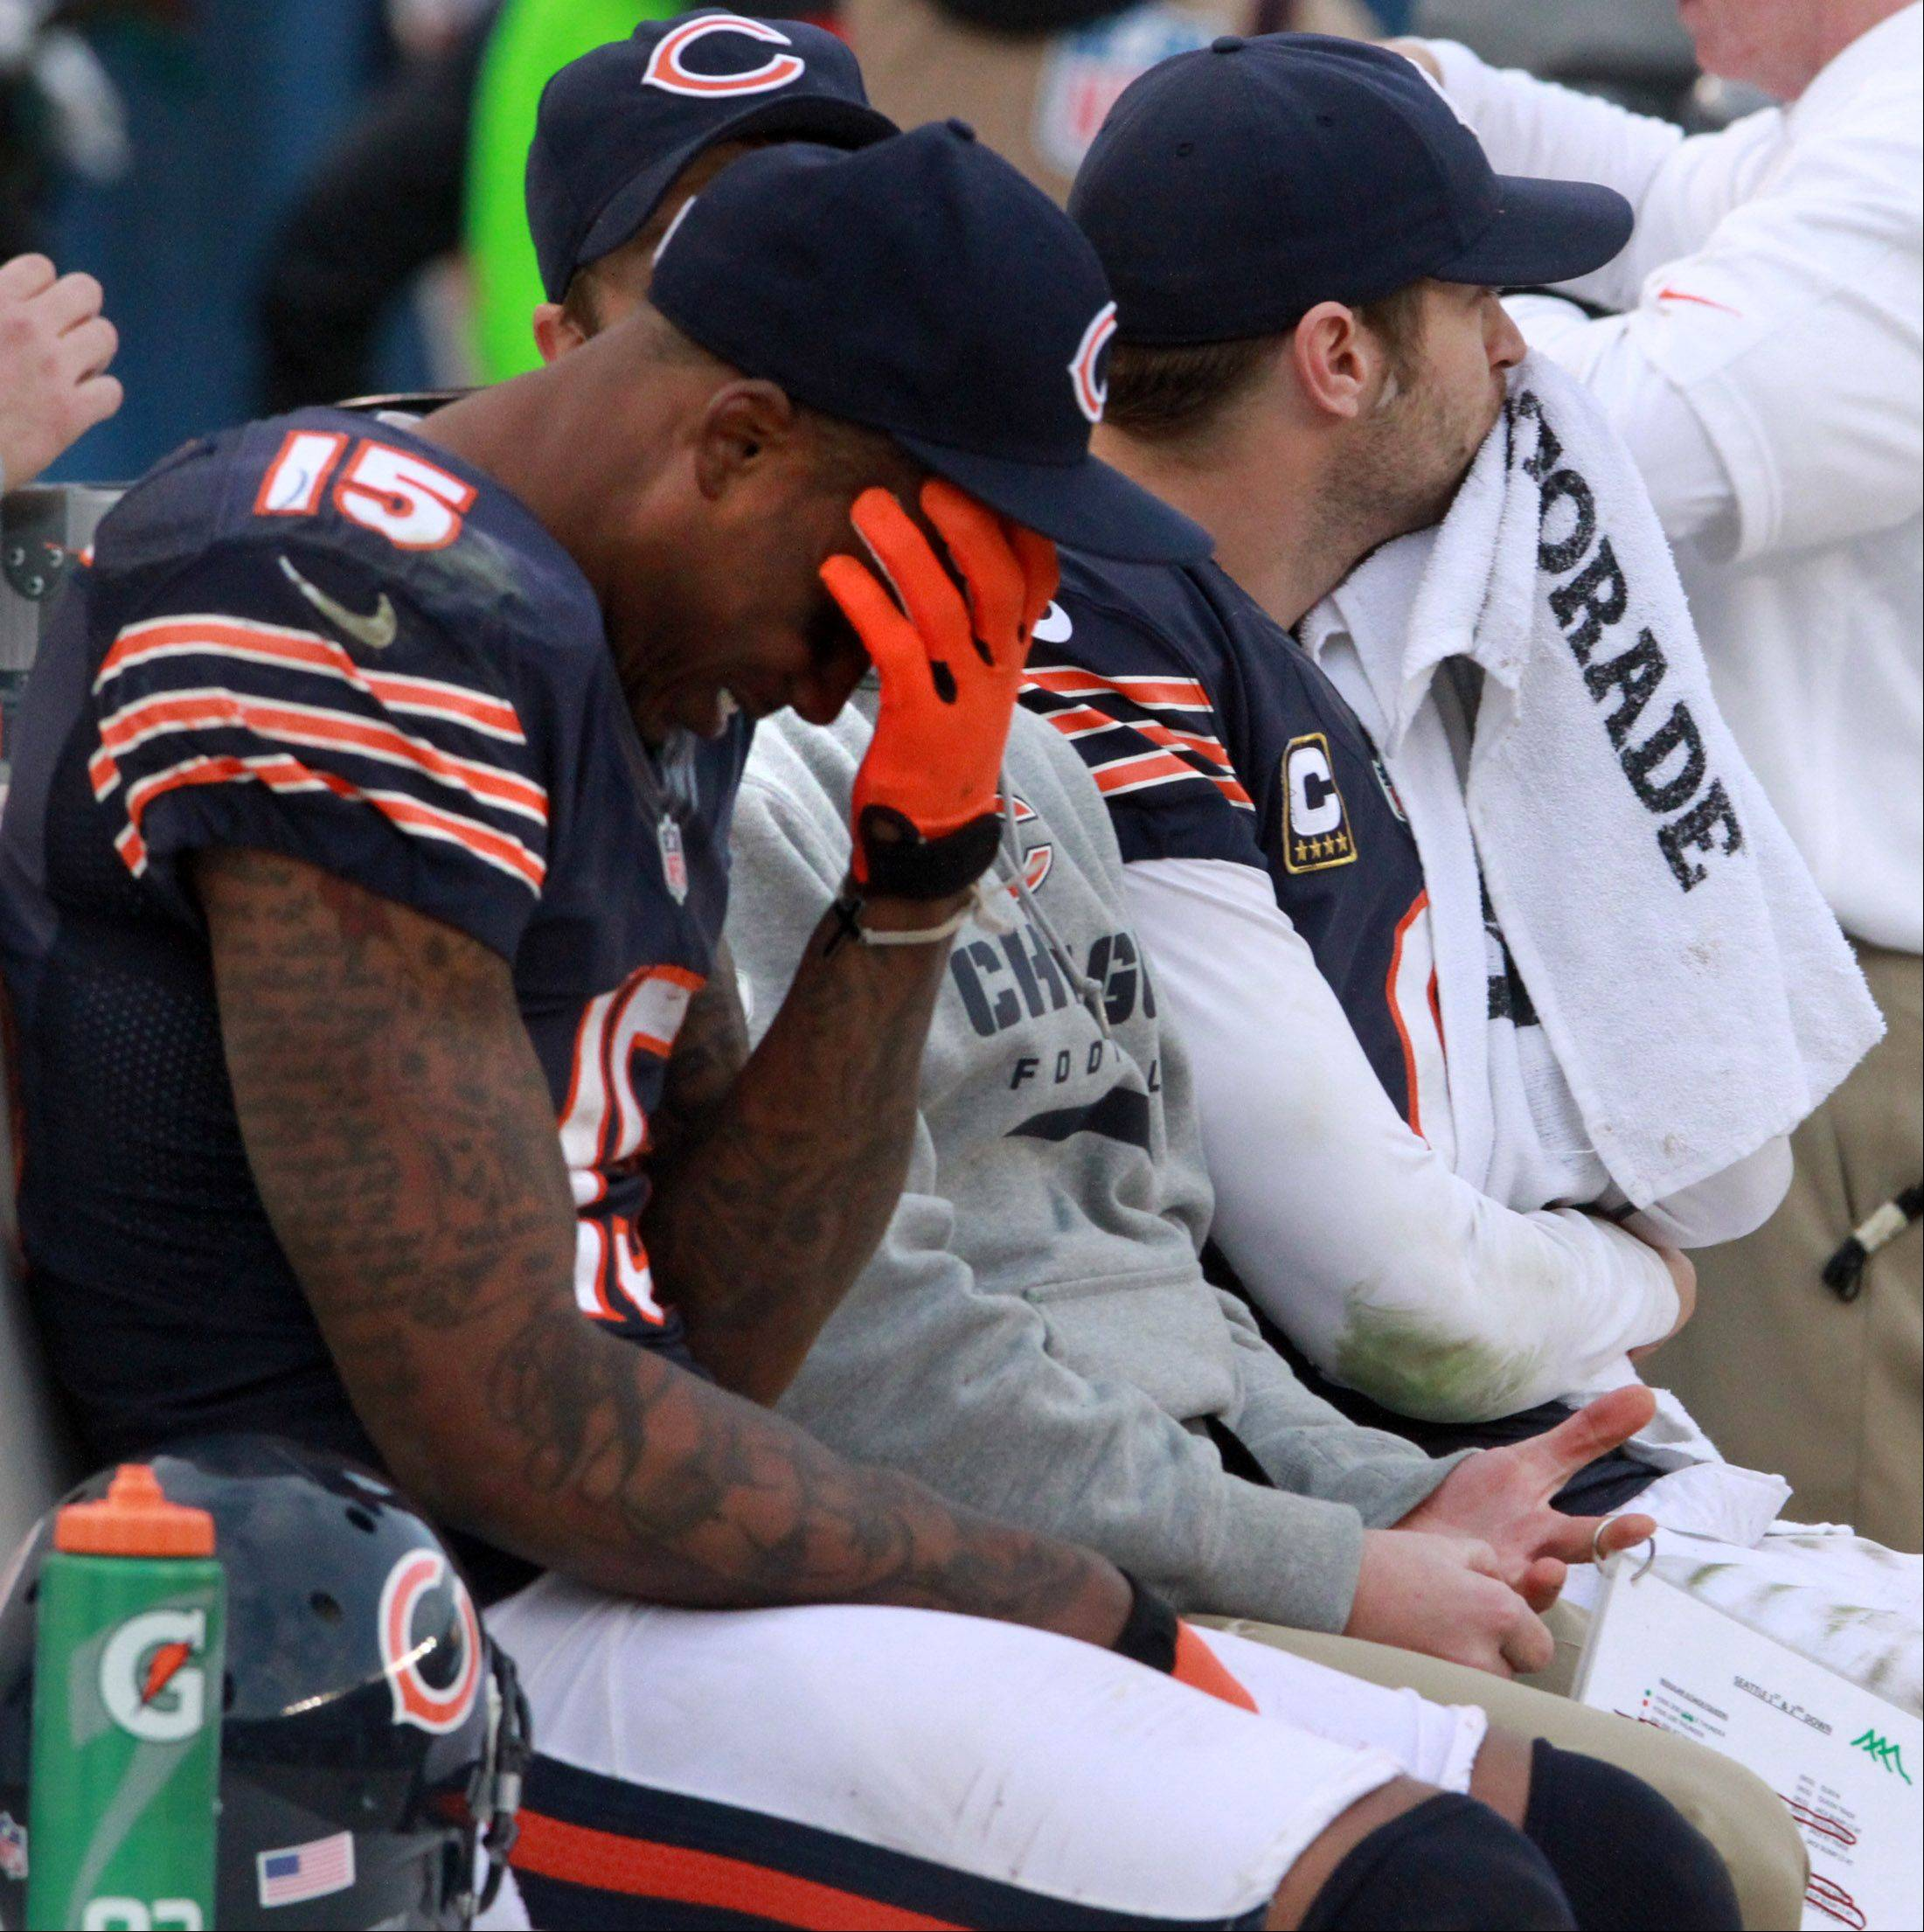 Bears wide receiver Brandon Marshall and quarterback Jay Cutler on the bench as against Seahawks score near the end of regulation at Soldier Field.